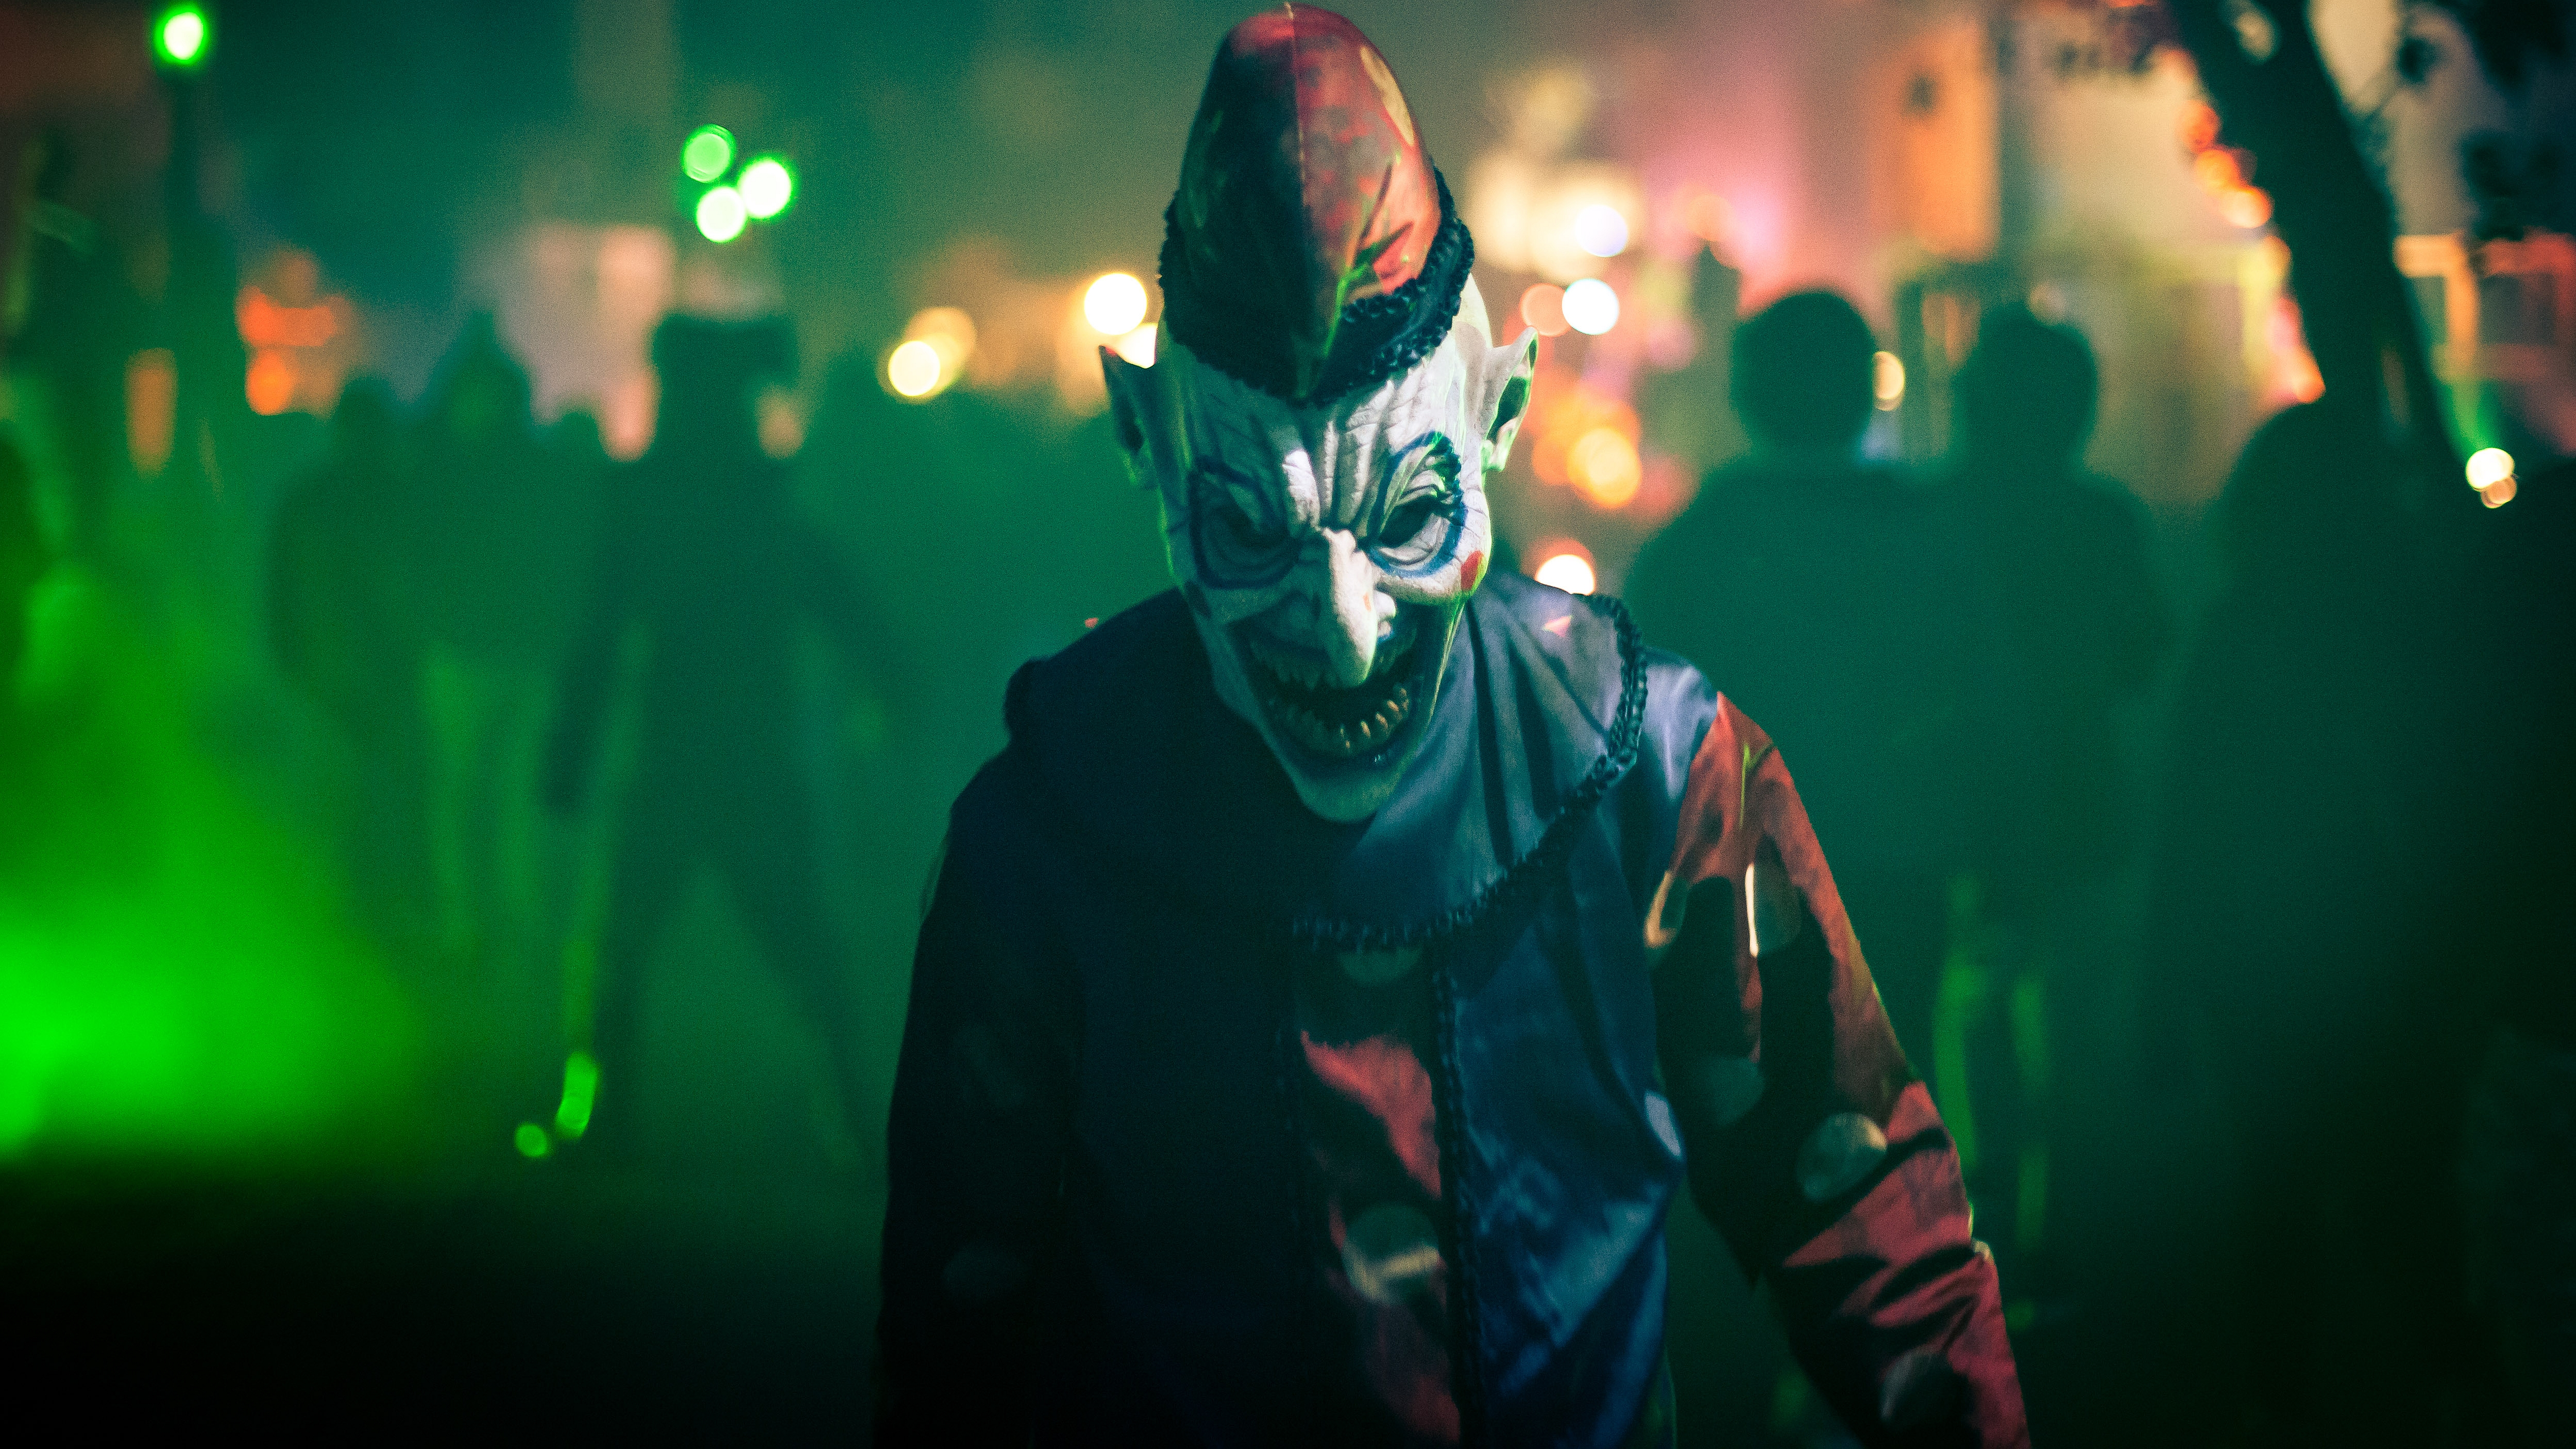 48 Clown Hd Wallpapers Background Images Wallpaper Abyss